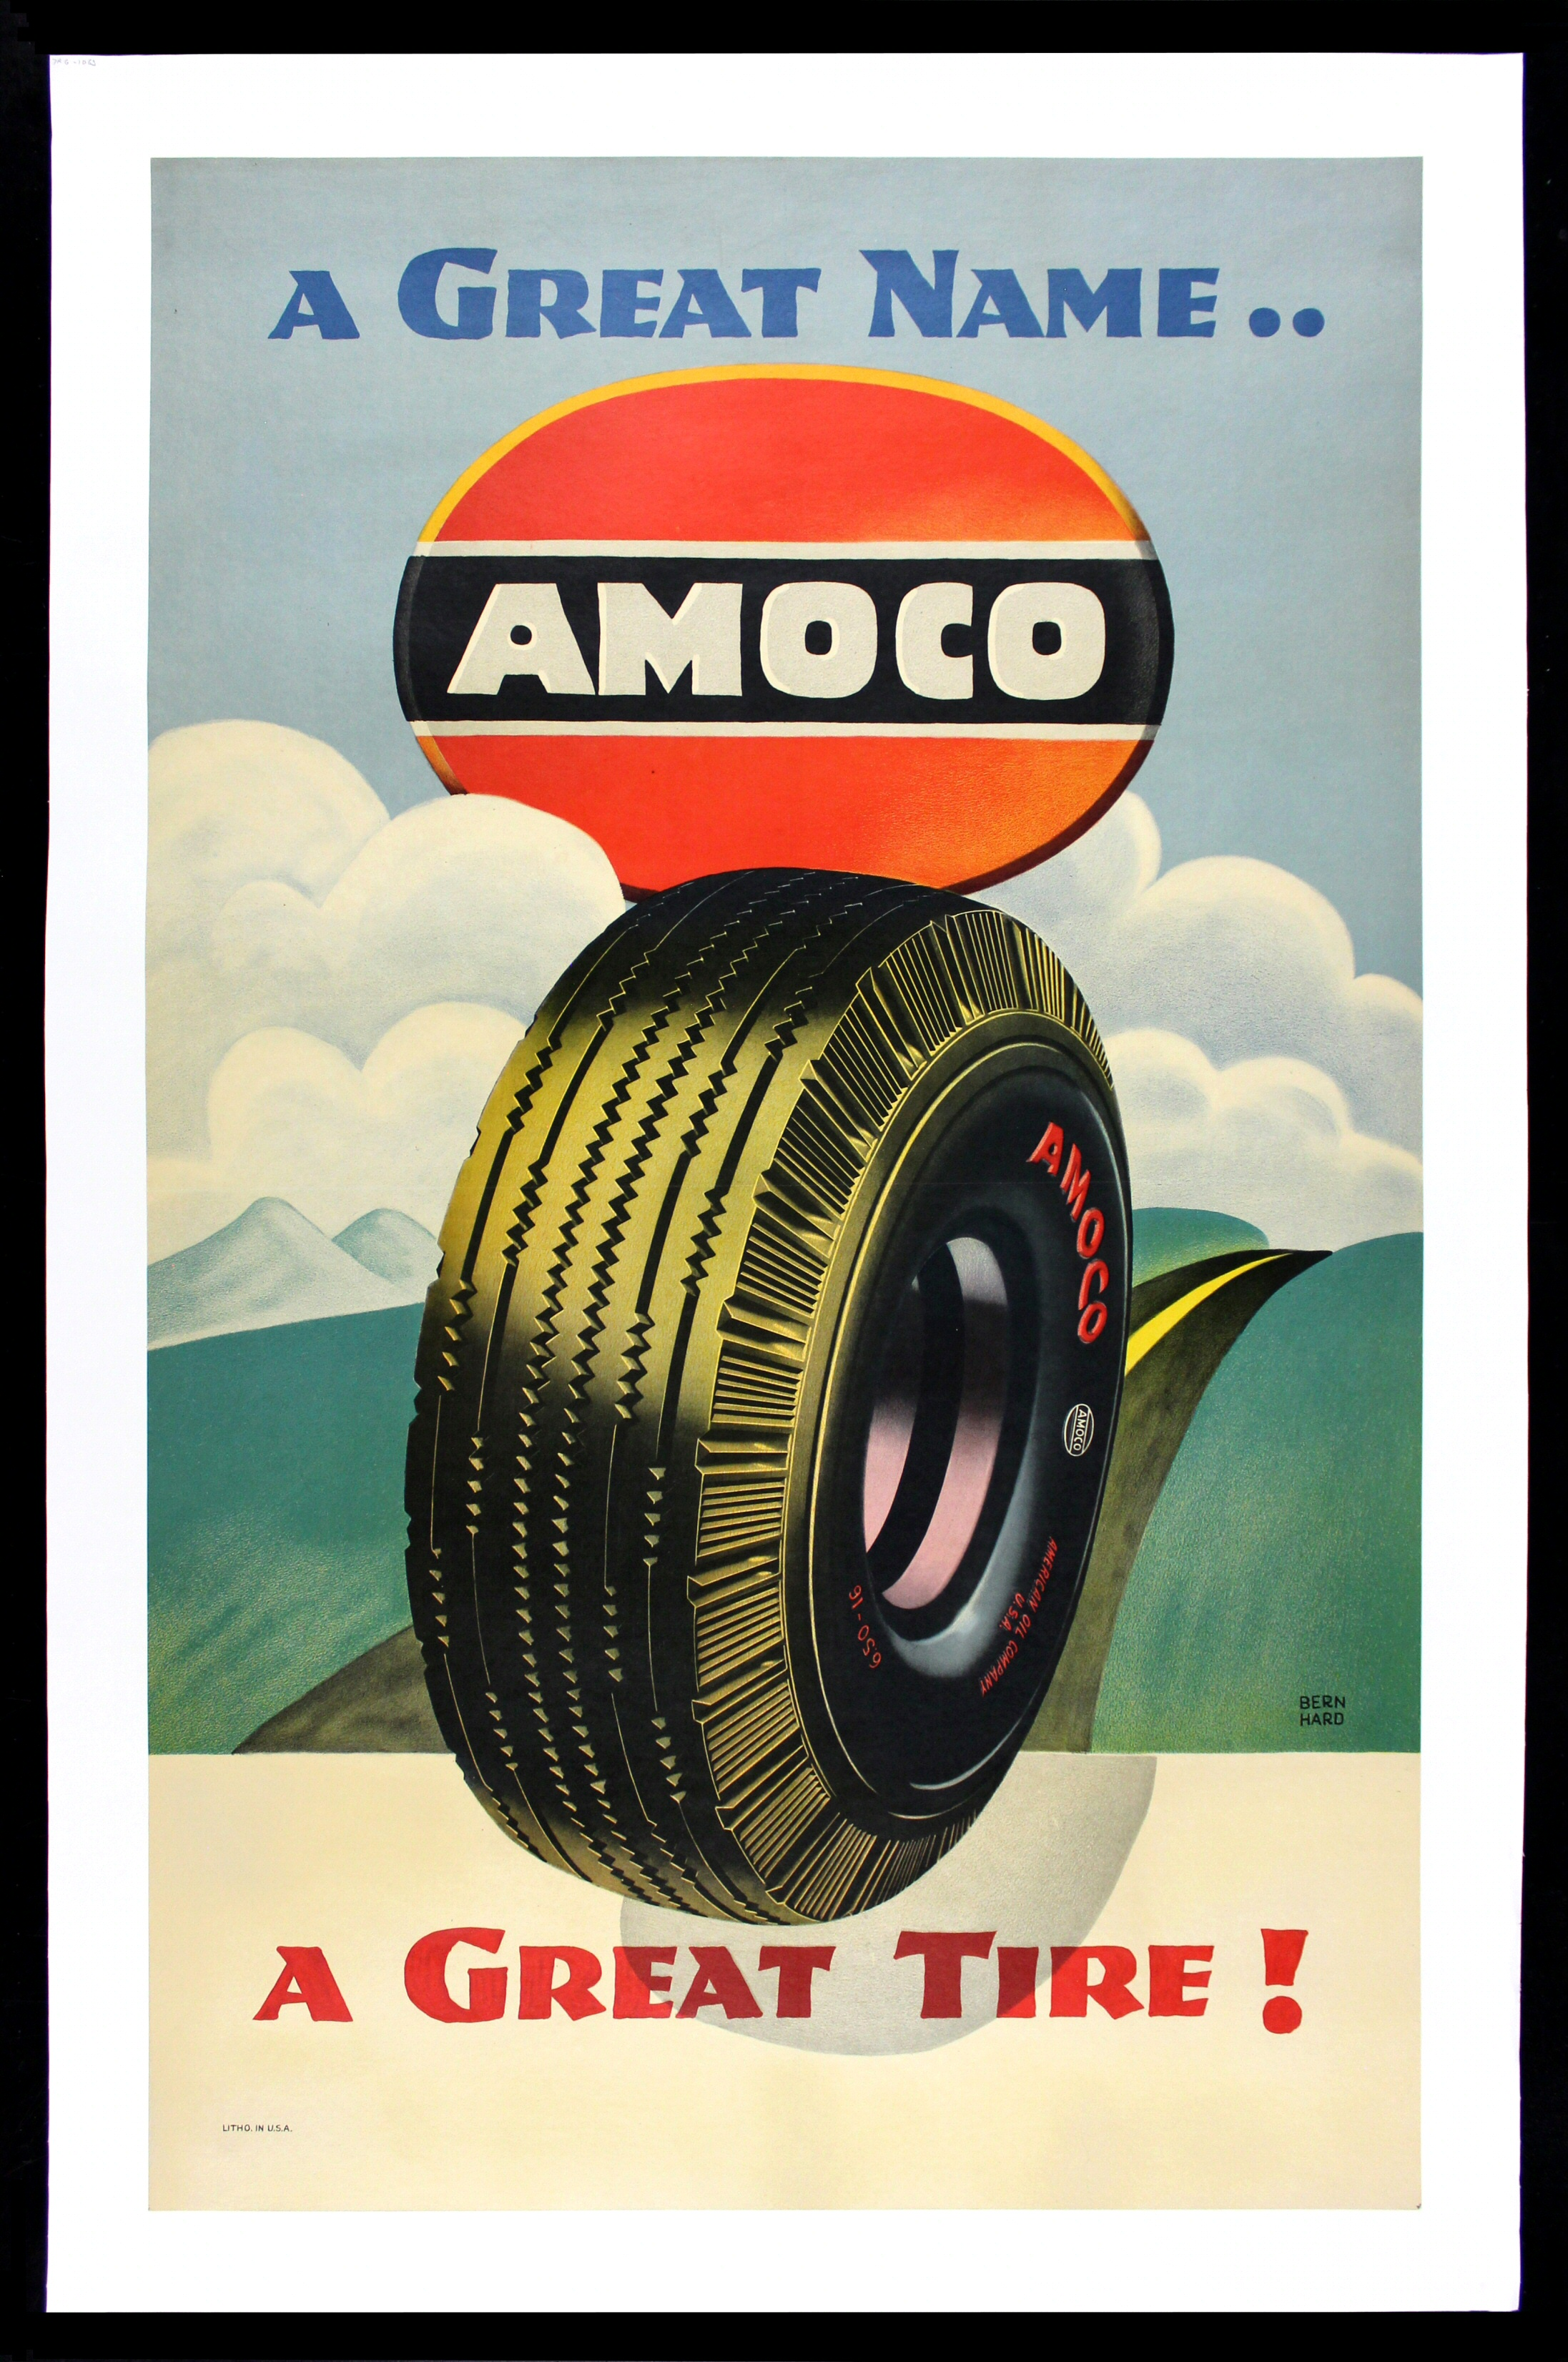 Car Hot Rod Racing Auto Movie Posters Garage Decor Motorcycle Biker Gang Film Posters Automobile